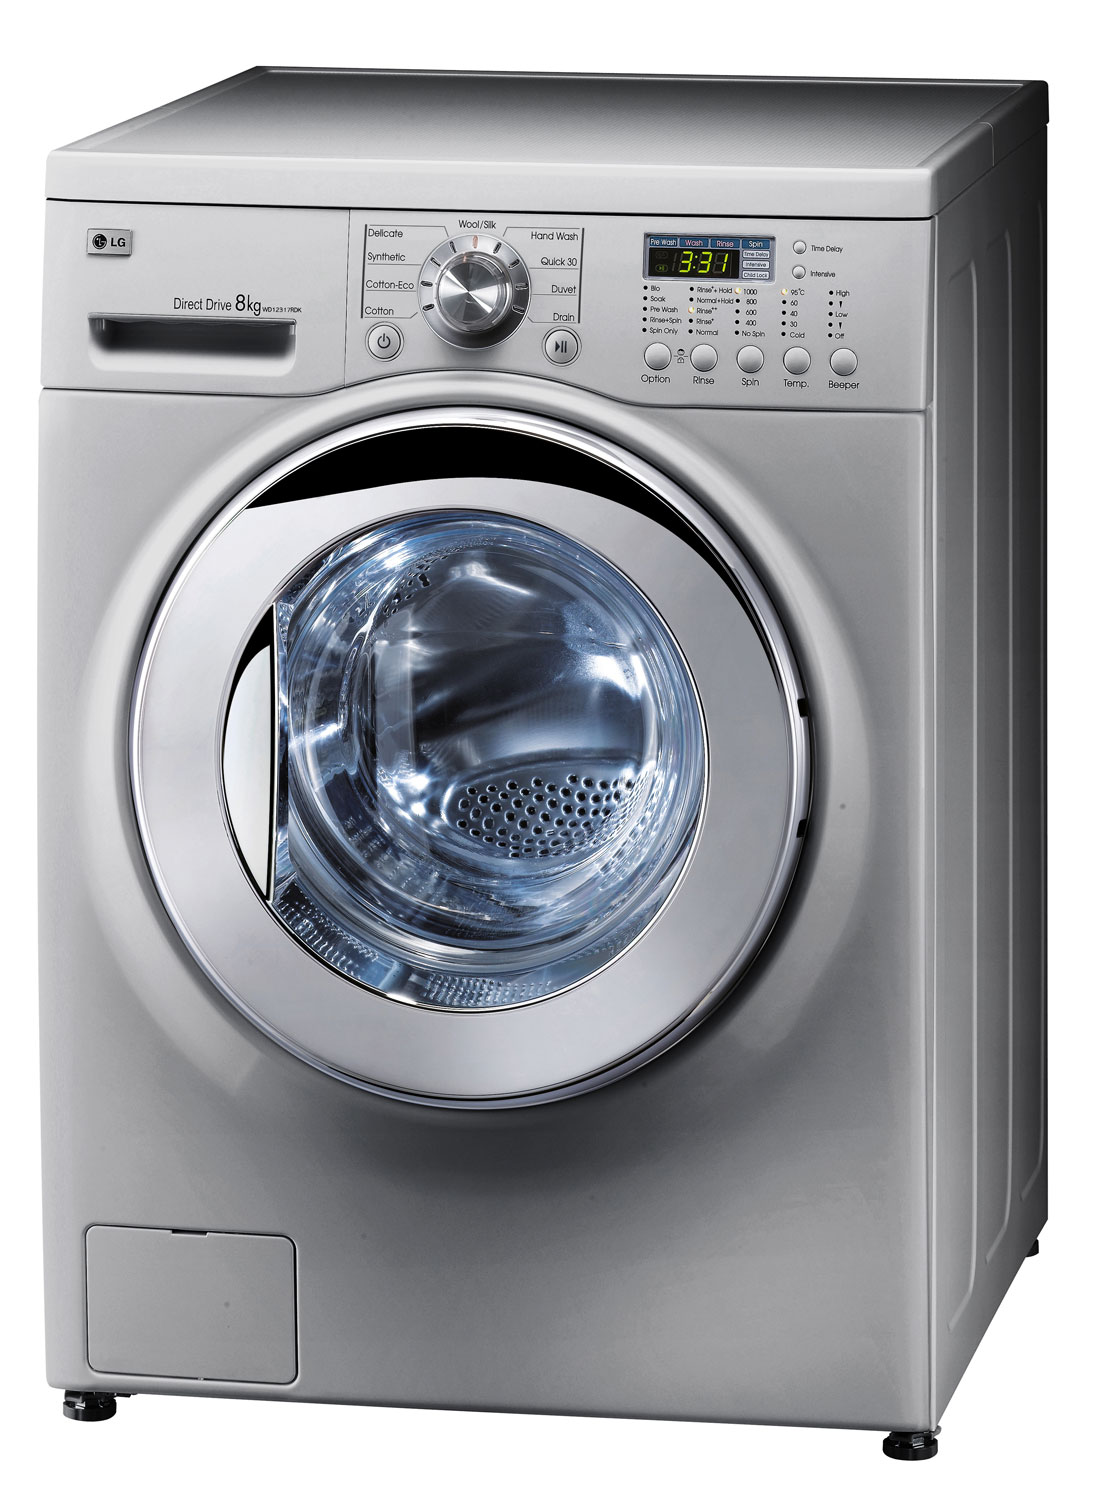 Washing Dryers Machines Download Images Photos And